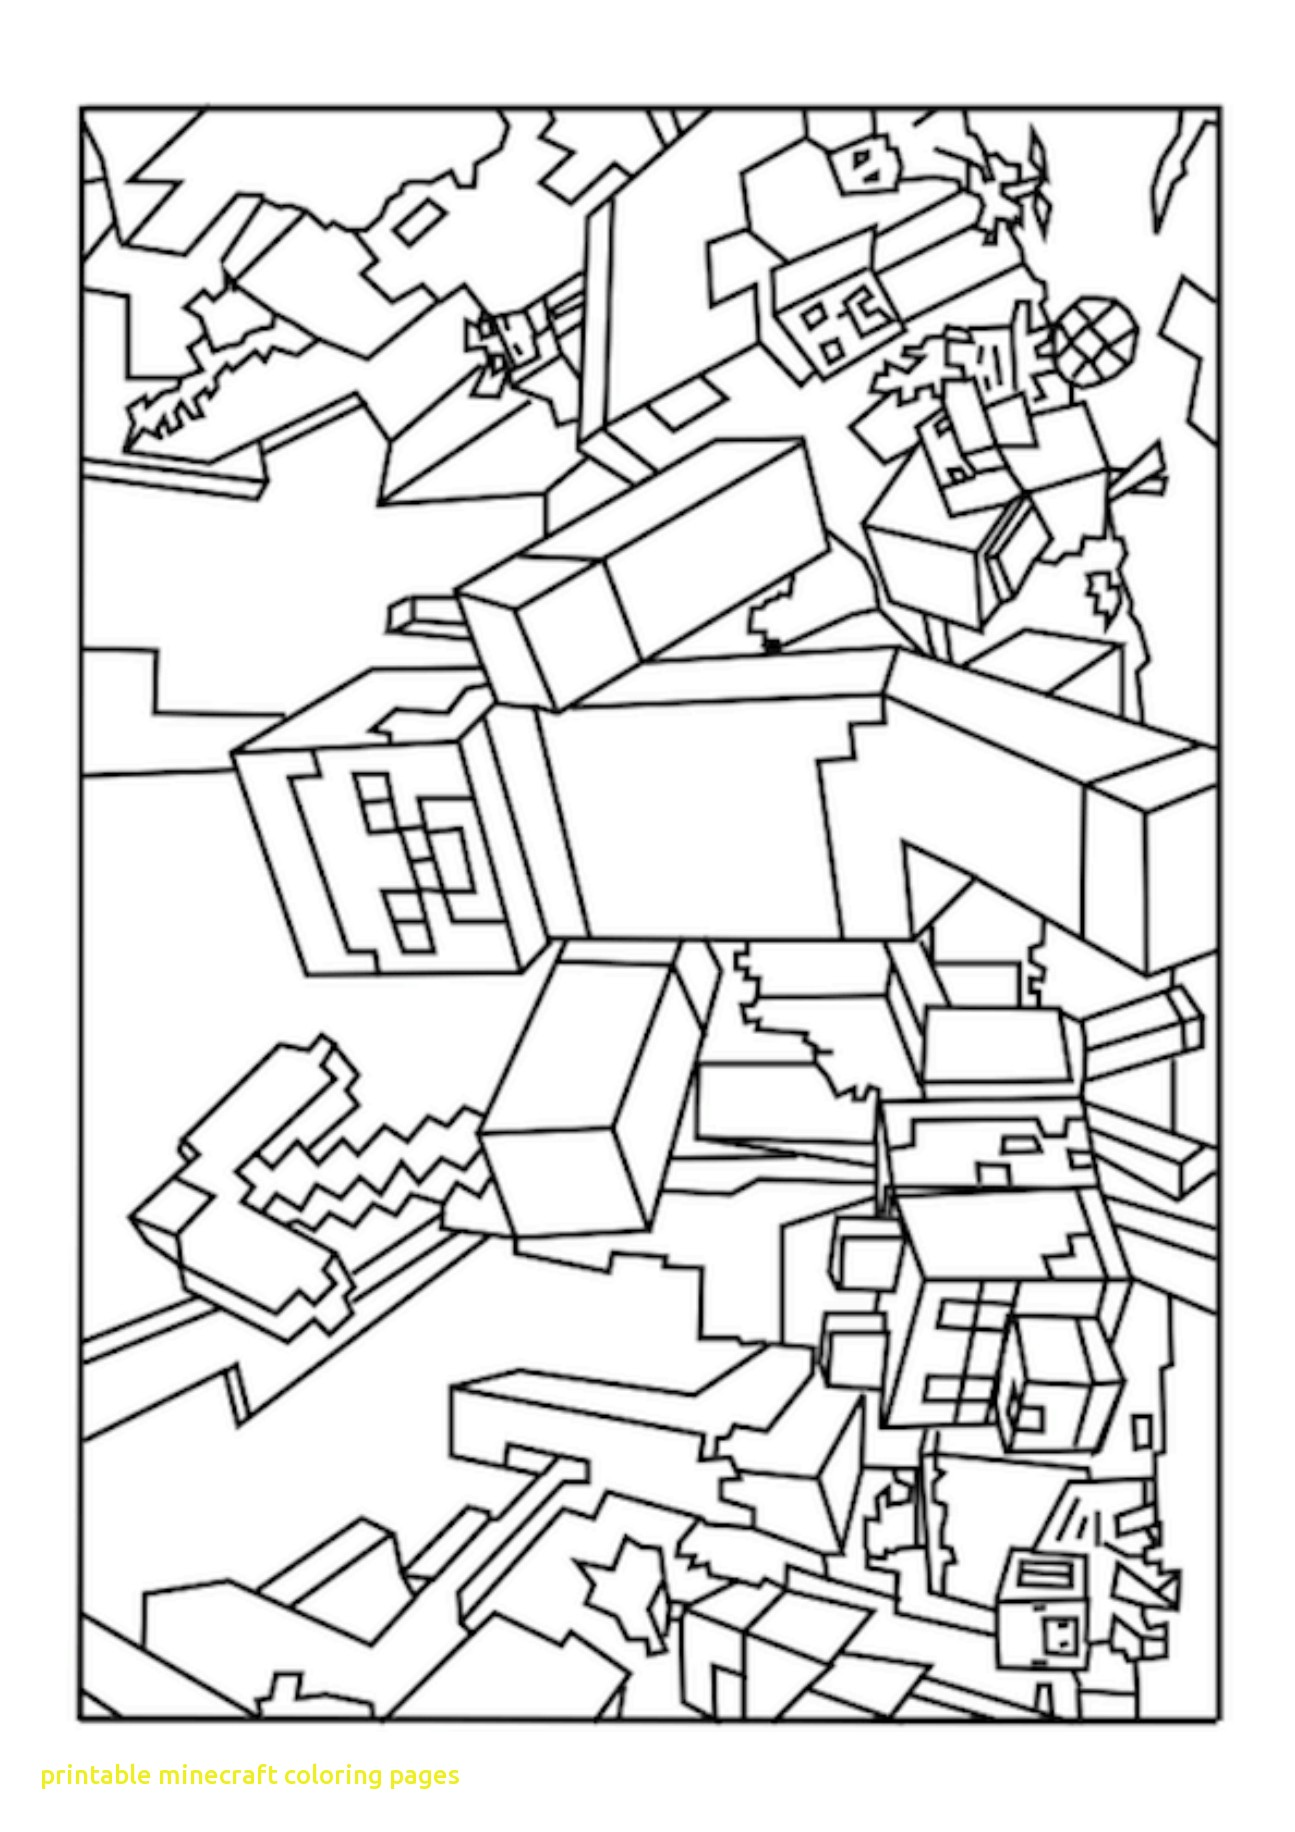 Images of minecraft coloring pages